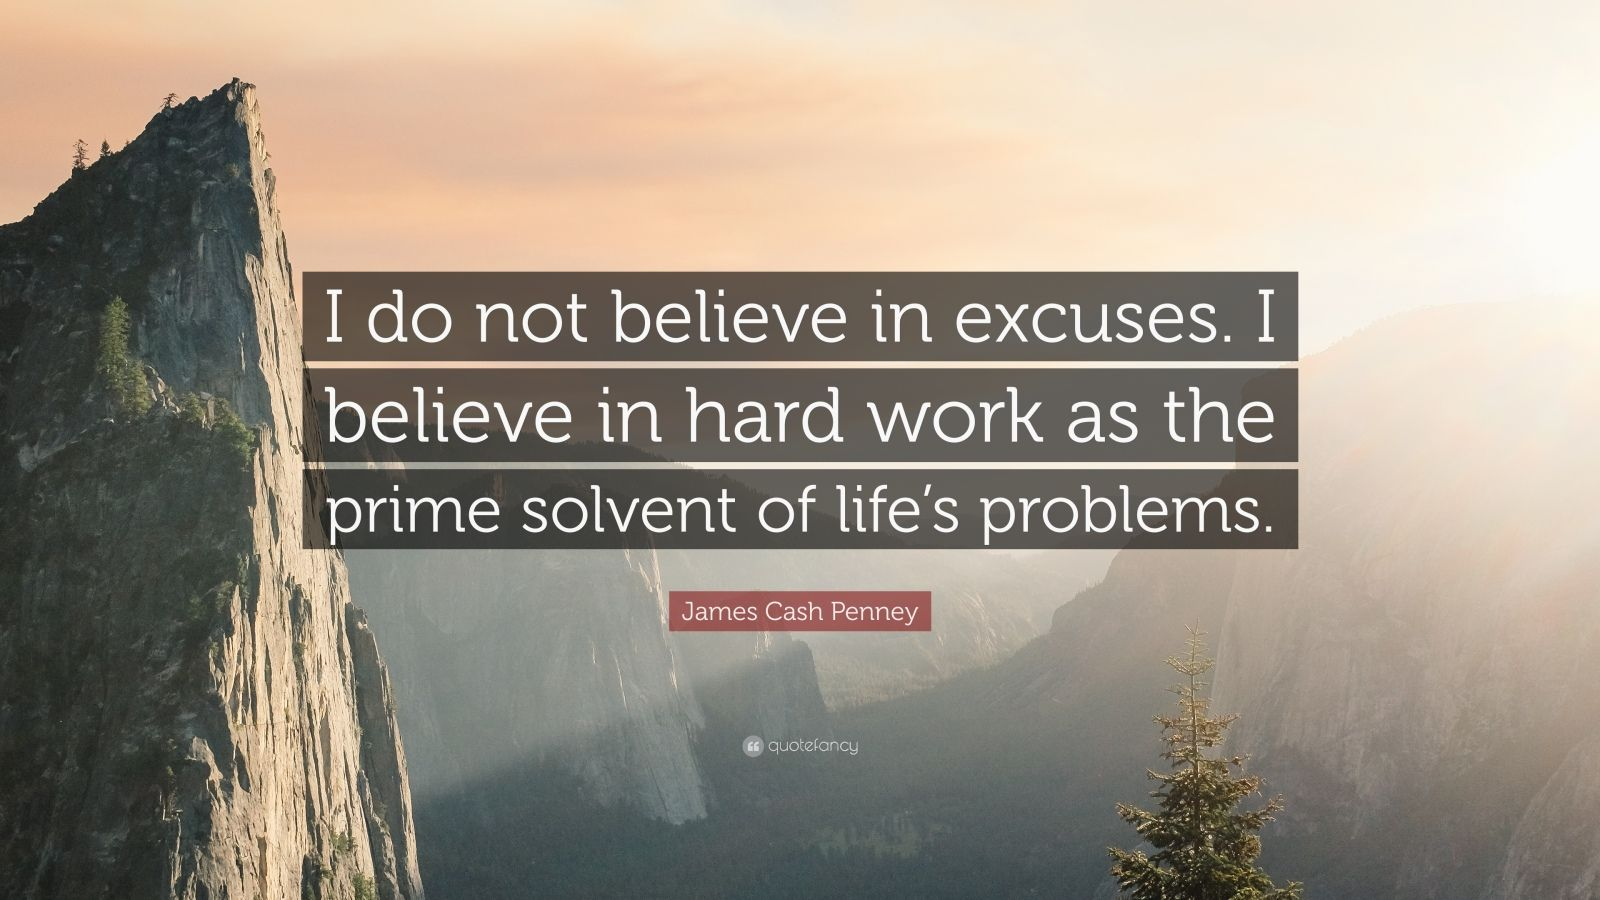 """James Cash Penney Quote: """"I do not believe in excuses. I believe in hard work as the prime solvent of life's problems."""""""